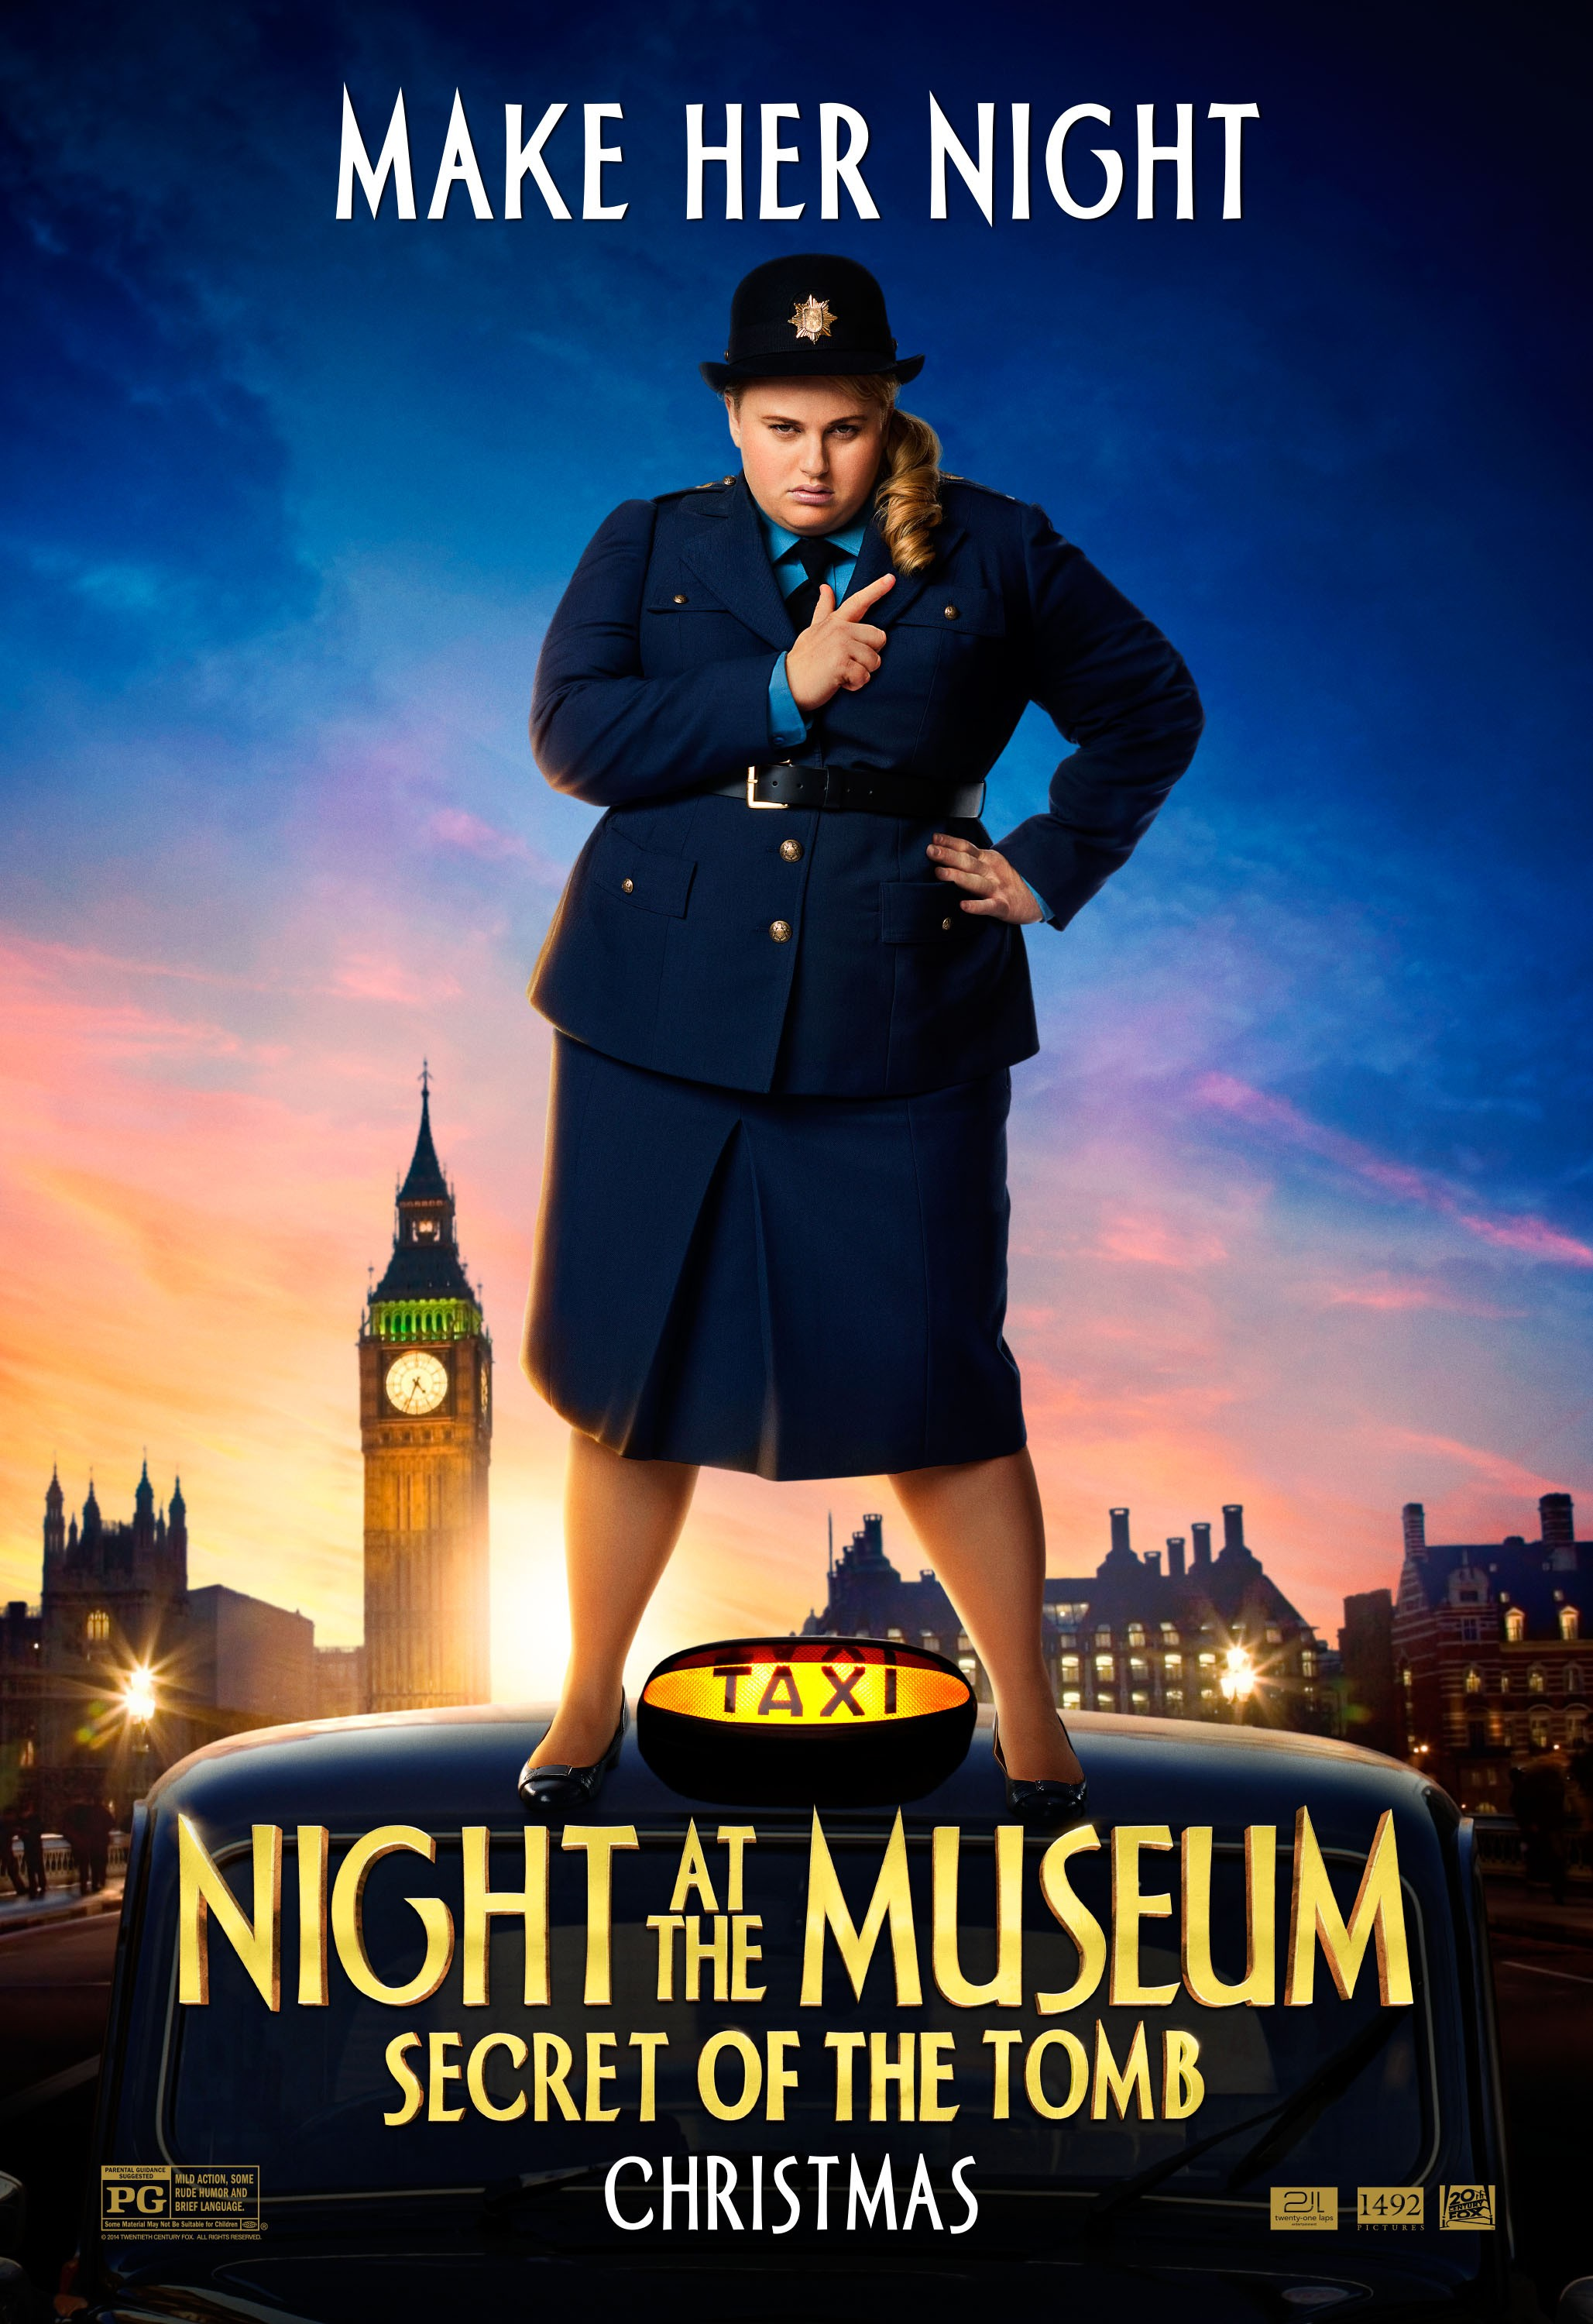 Night at the Museum Secret of the Tomb-PROMO CHAR-21NOVEMBRO2014-03